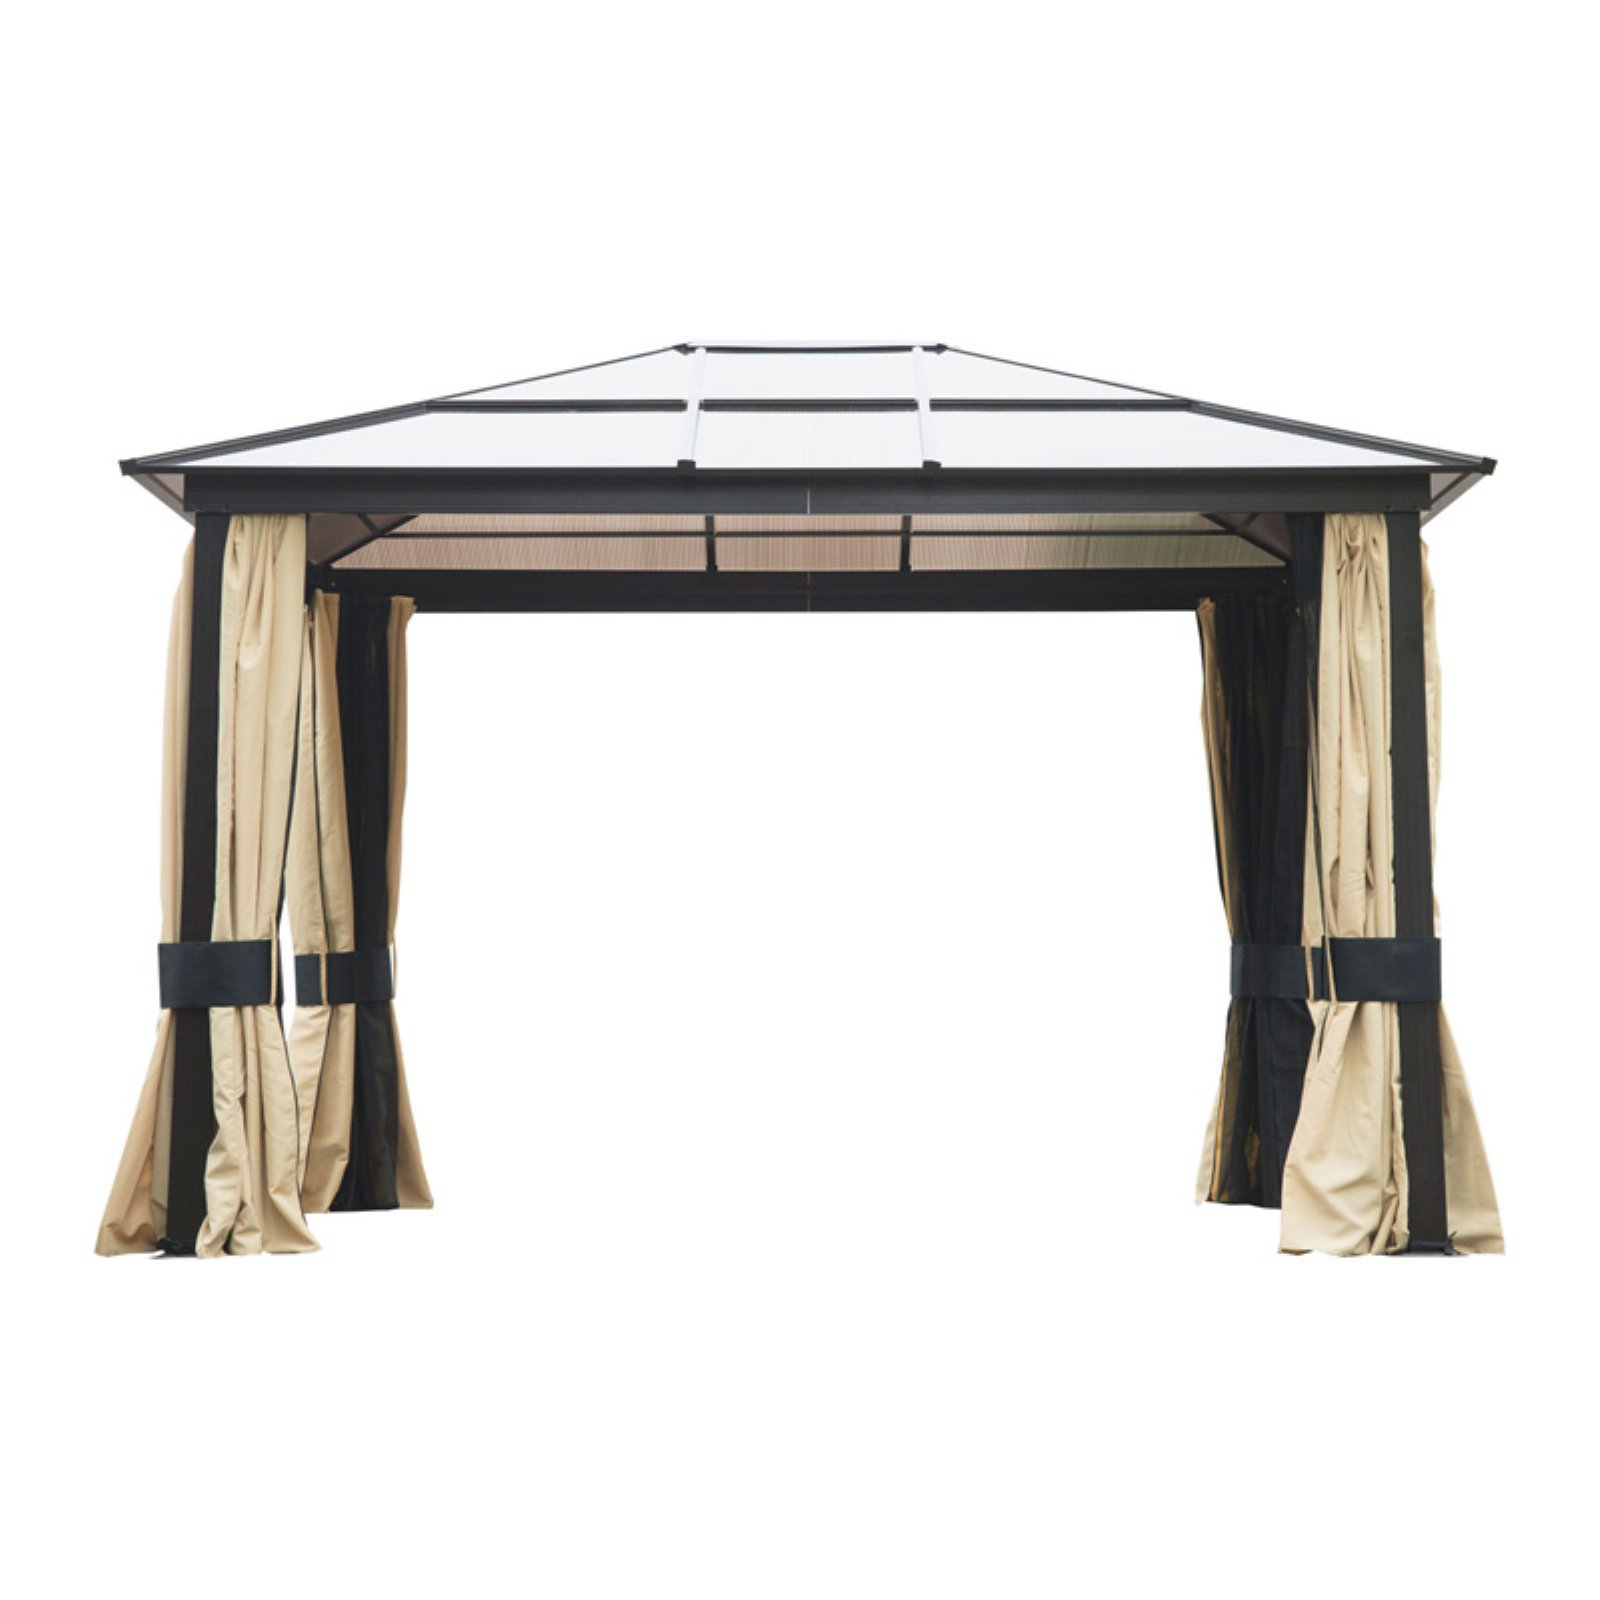 Outsunny 12 x 10 ft. Patio Gazebo Canopy with Mesh and Curtains by Aosom LLC